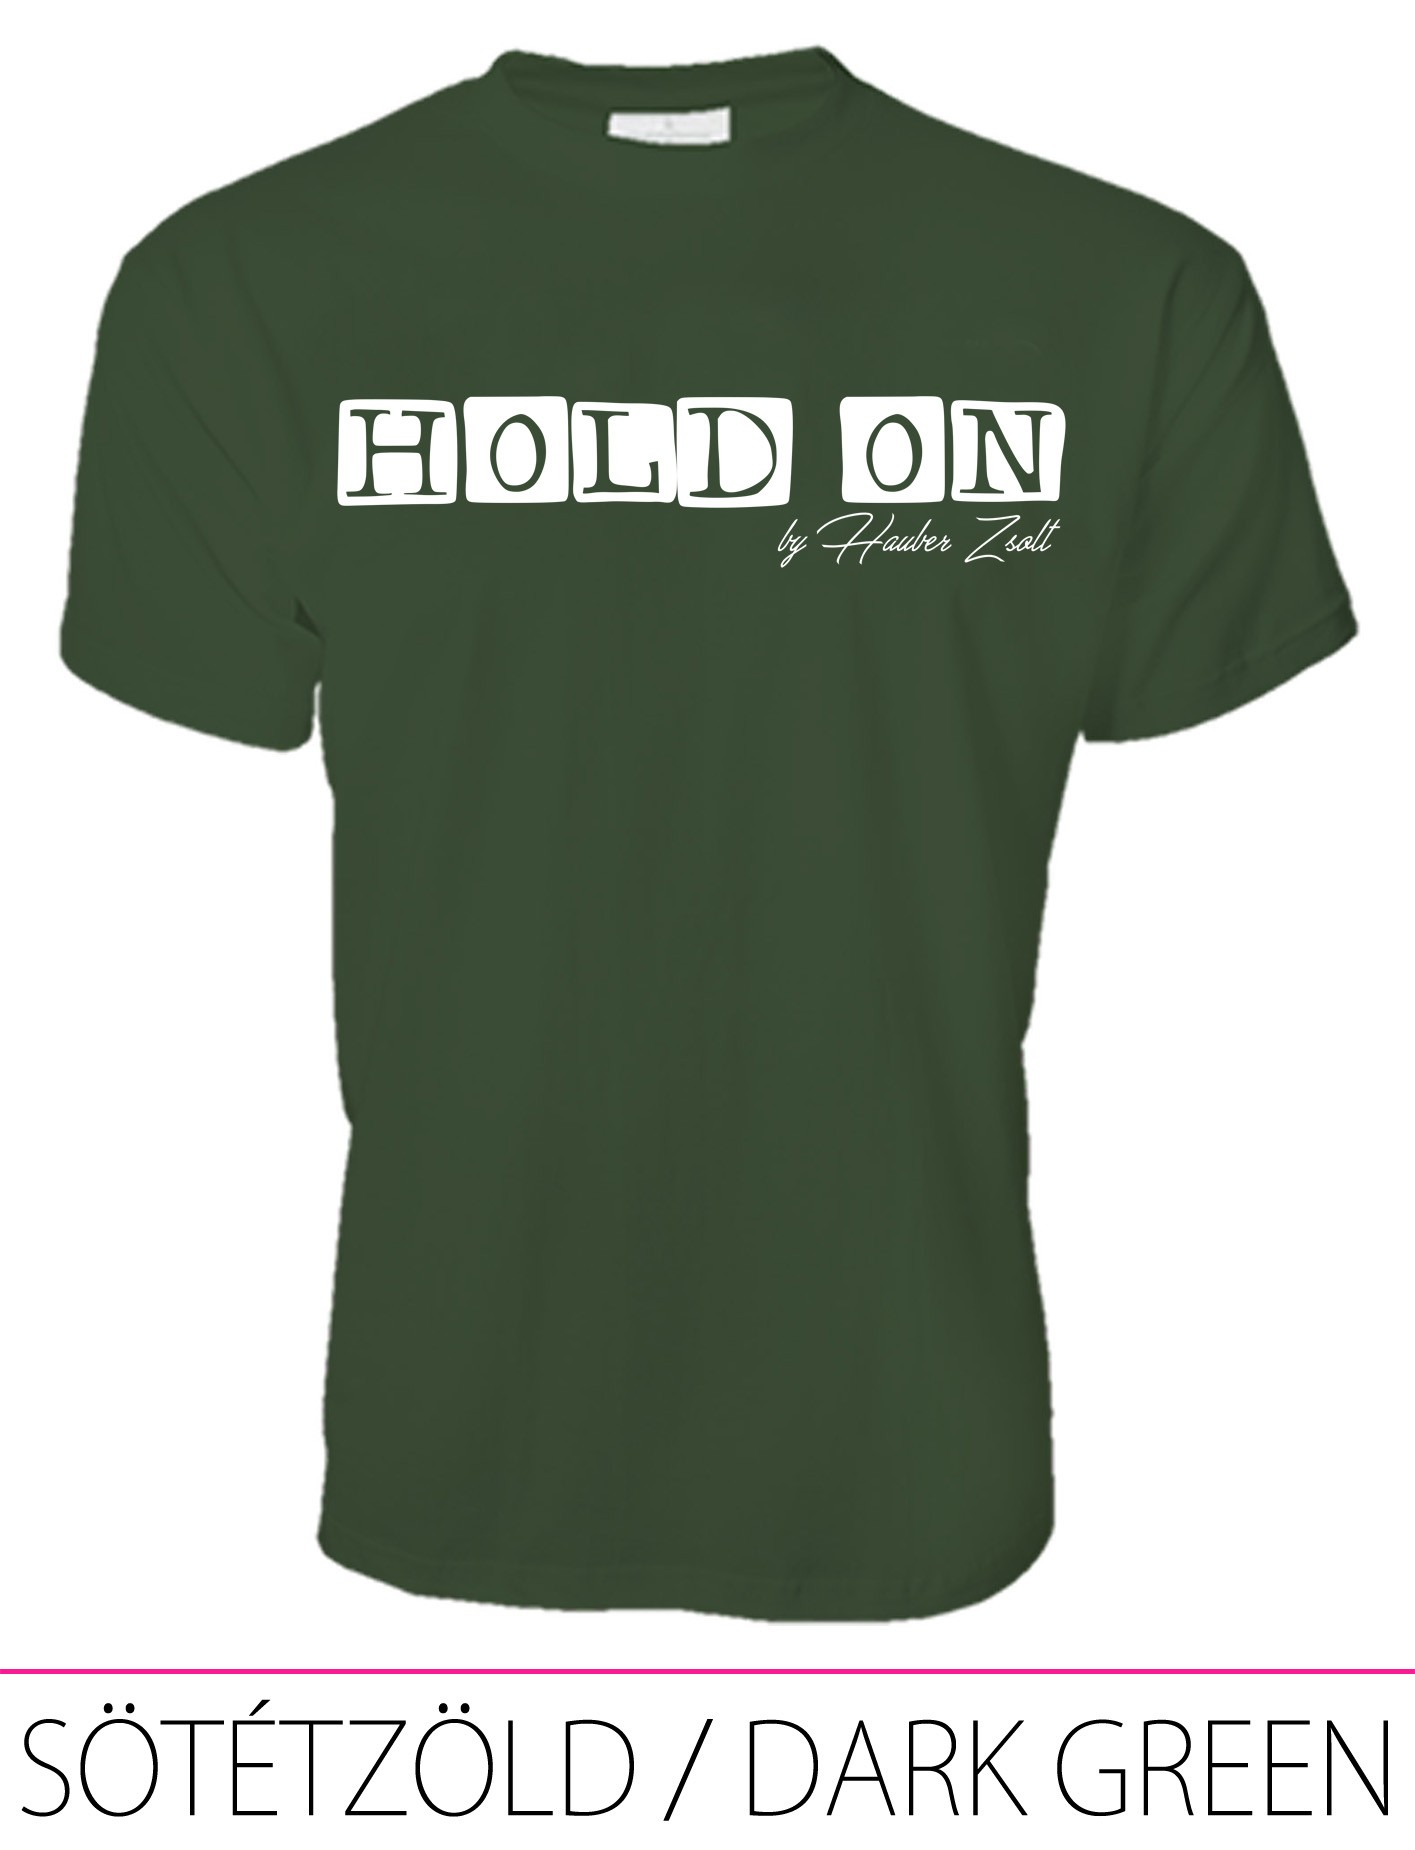 MEN CREW NECK T-SHIRT / HOLD ON DARK GREEN